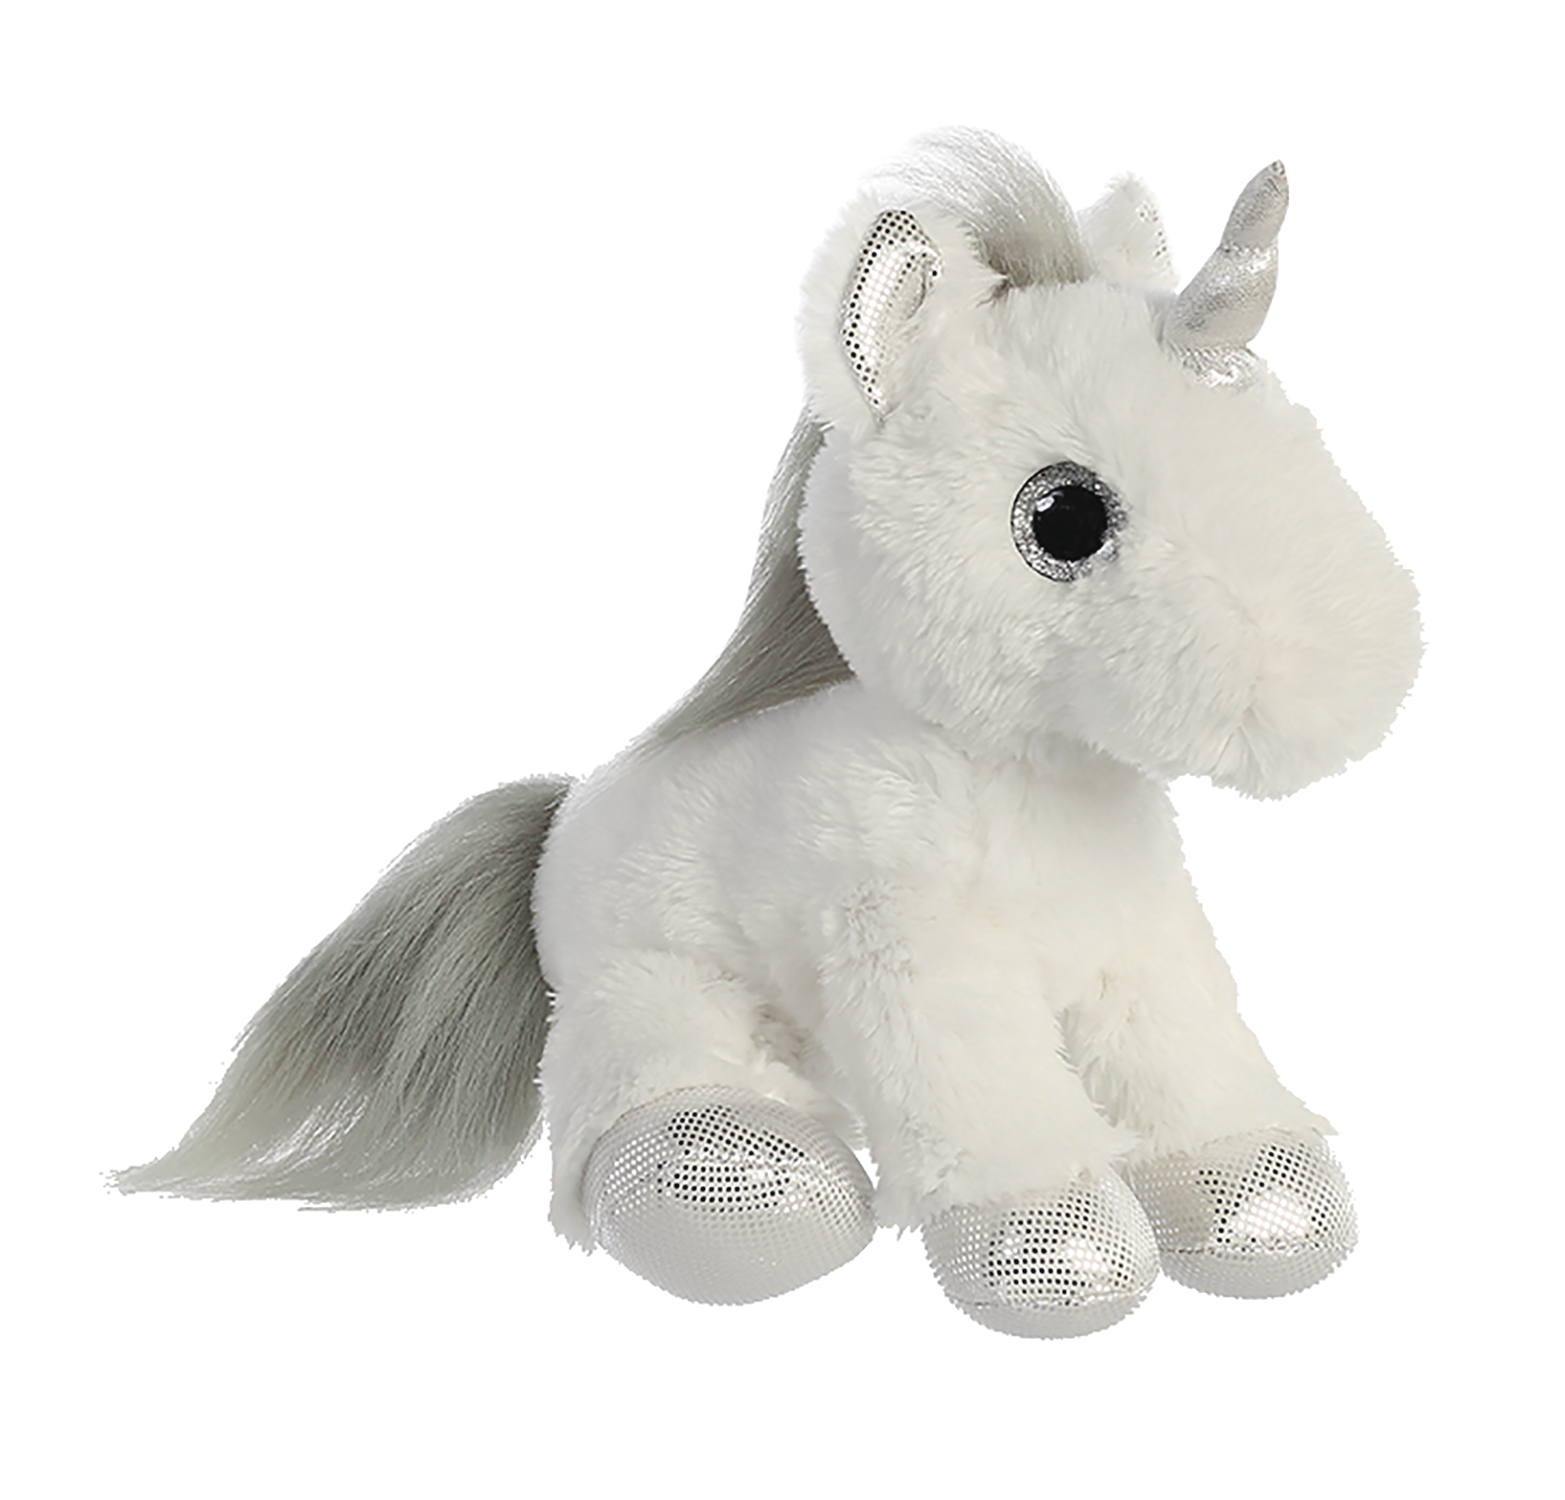 AURORA SILVER UNICORN 12IN PLUSH (FEB198088)